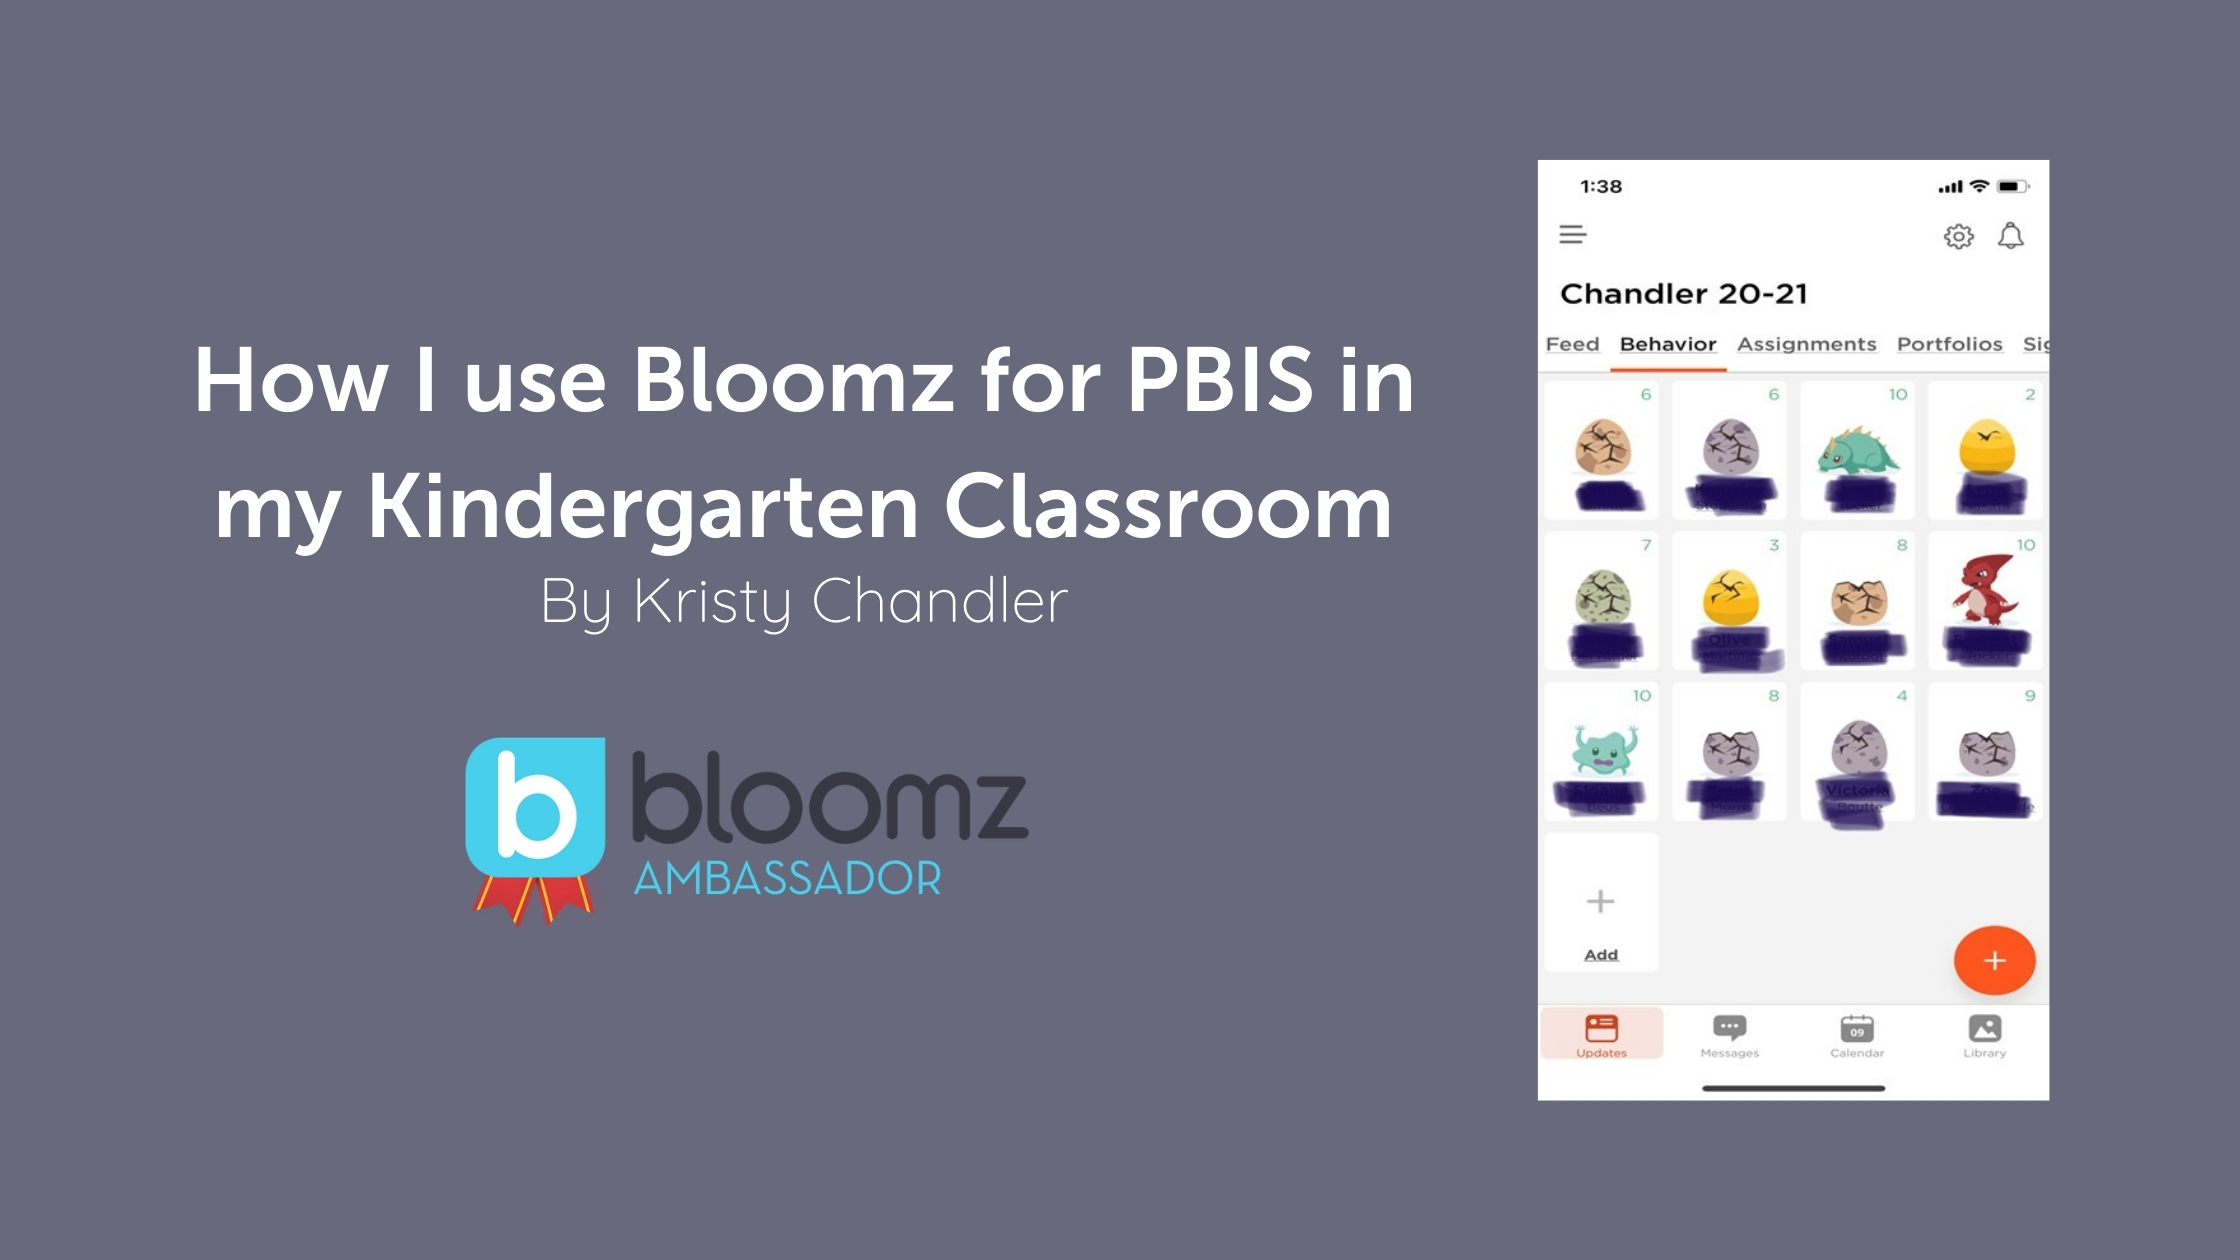 How I use Bloomz for PBIS in my Kindergarten Classroom